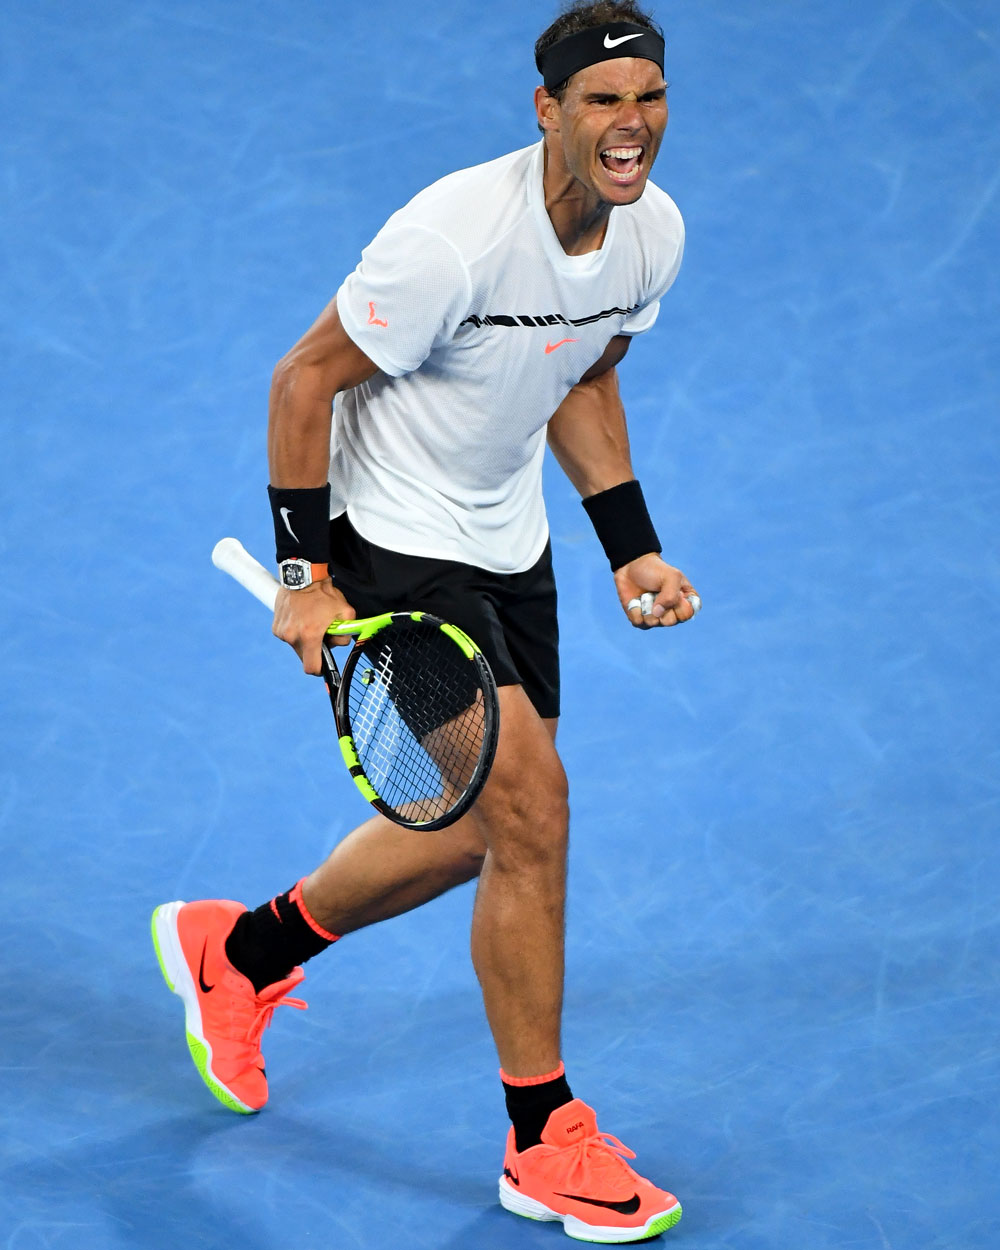 new product 09f5d 2240d Nadal has tried new racquets earlier this year (rumoured to be the HEAD MxG  3 ...